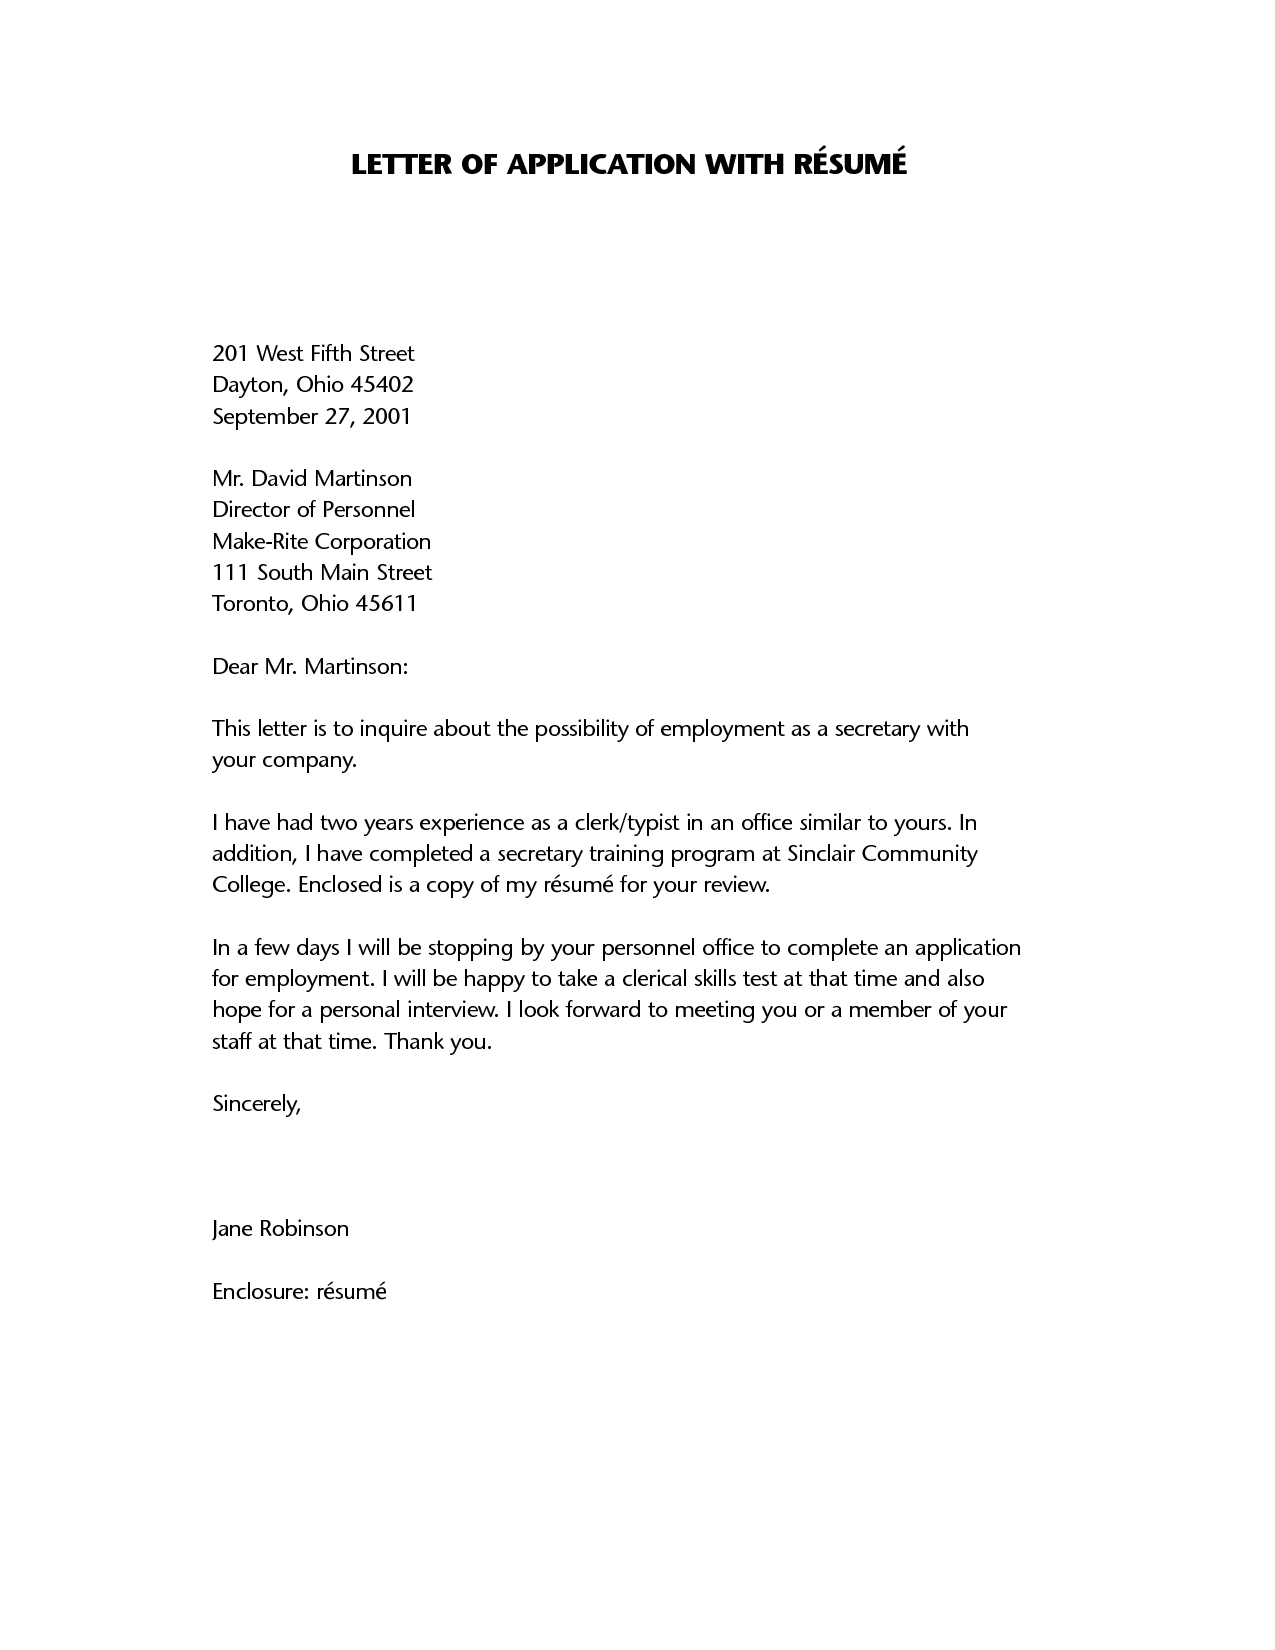 Resume Letter Resume Application Letter  A Letter Of Application Is A Document